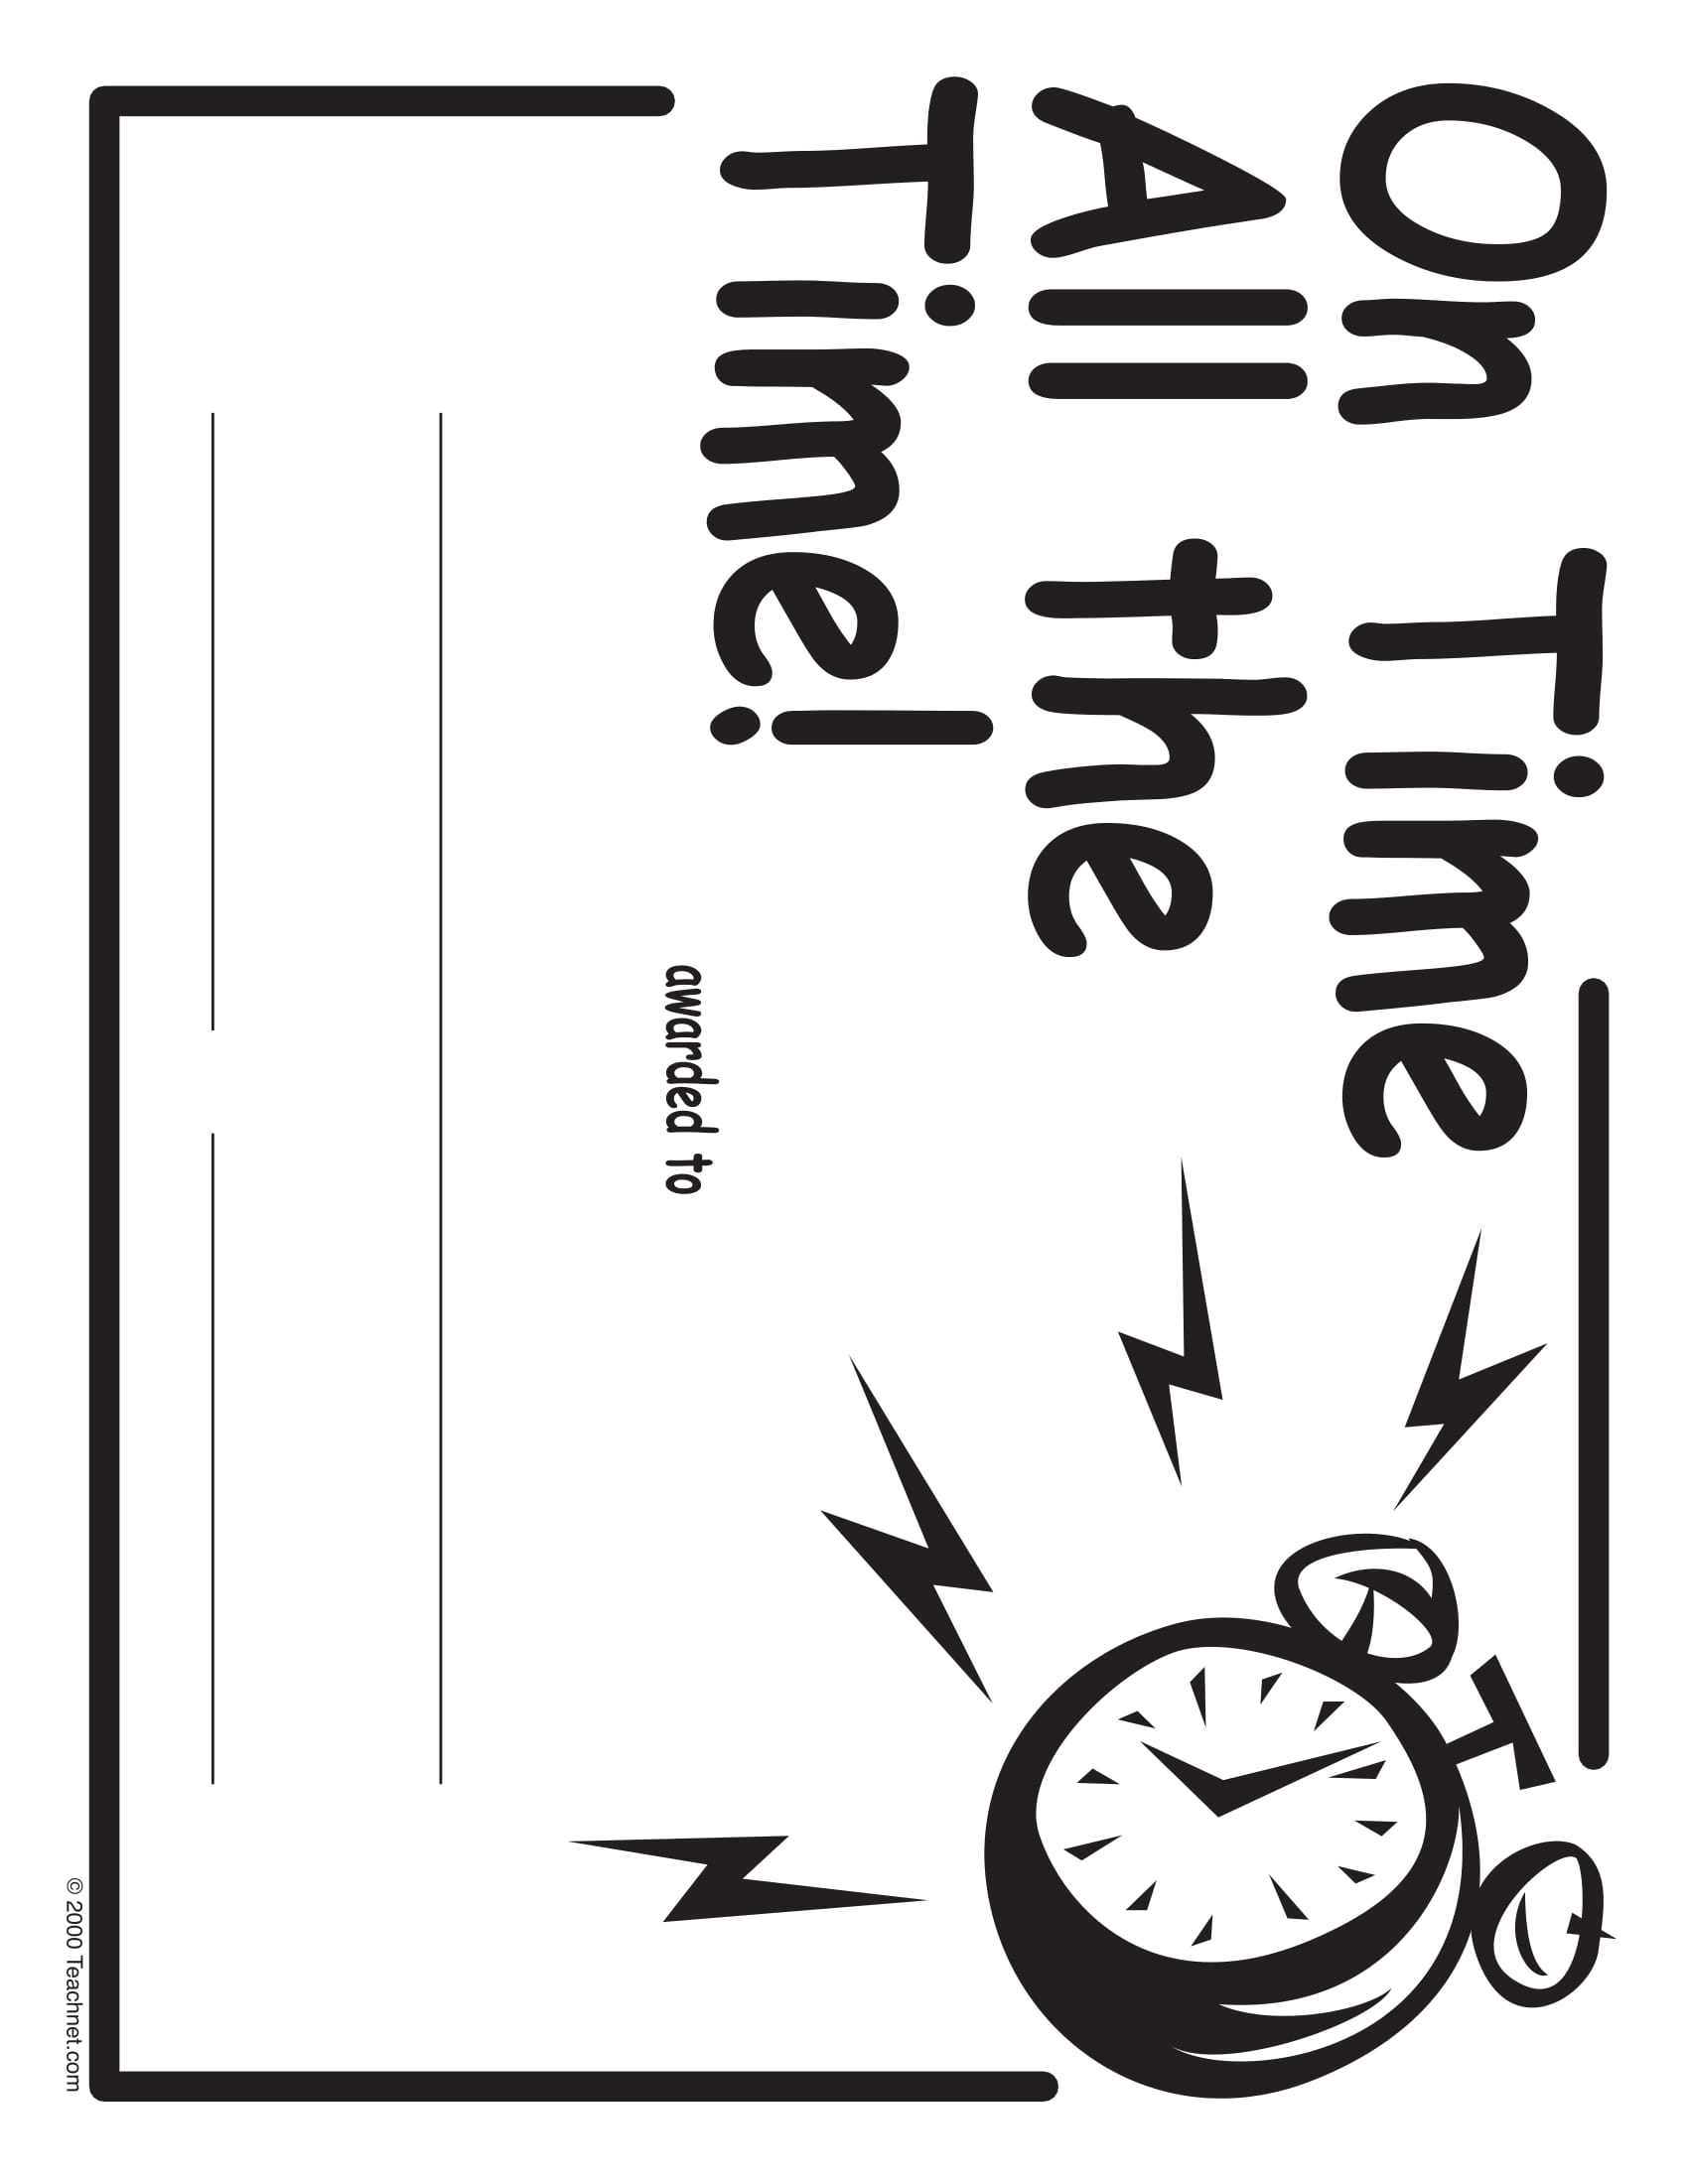 on time blank award certificate example